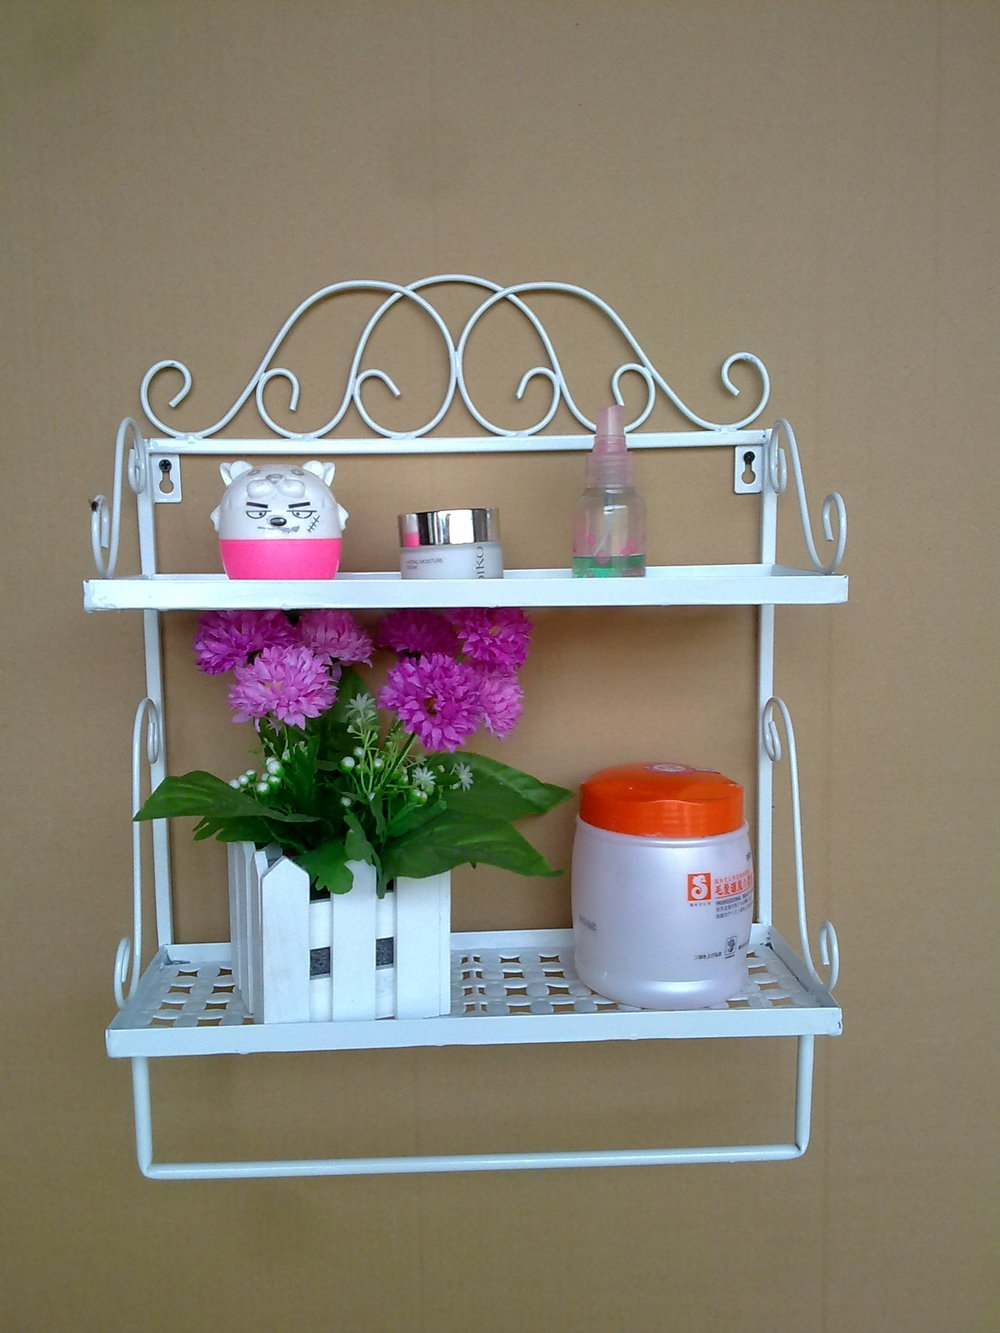 ... Free Shipping 2 Tier Iron Craft Wall Rack Vintage Shelf Bathroom Rack  Towel Bar Iron Decoration ...